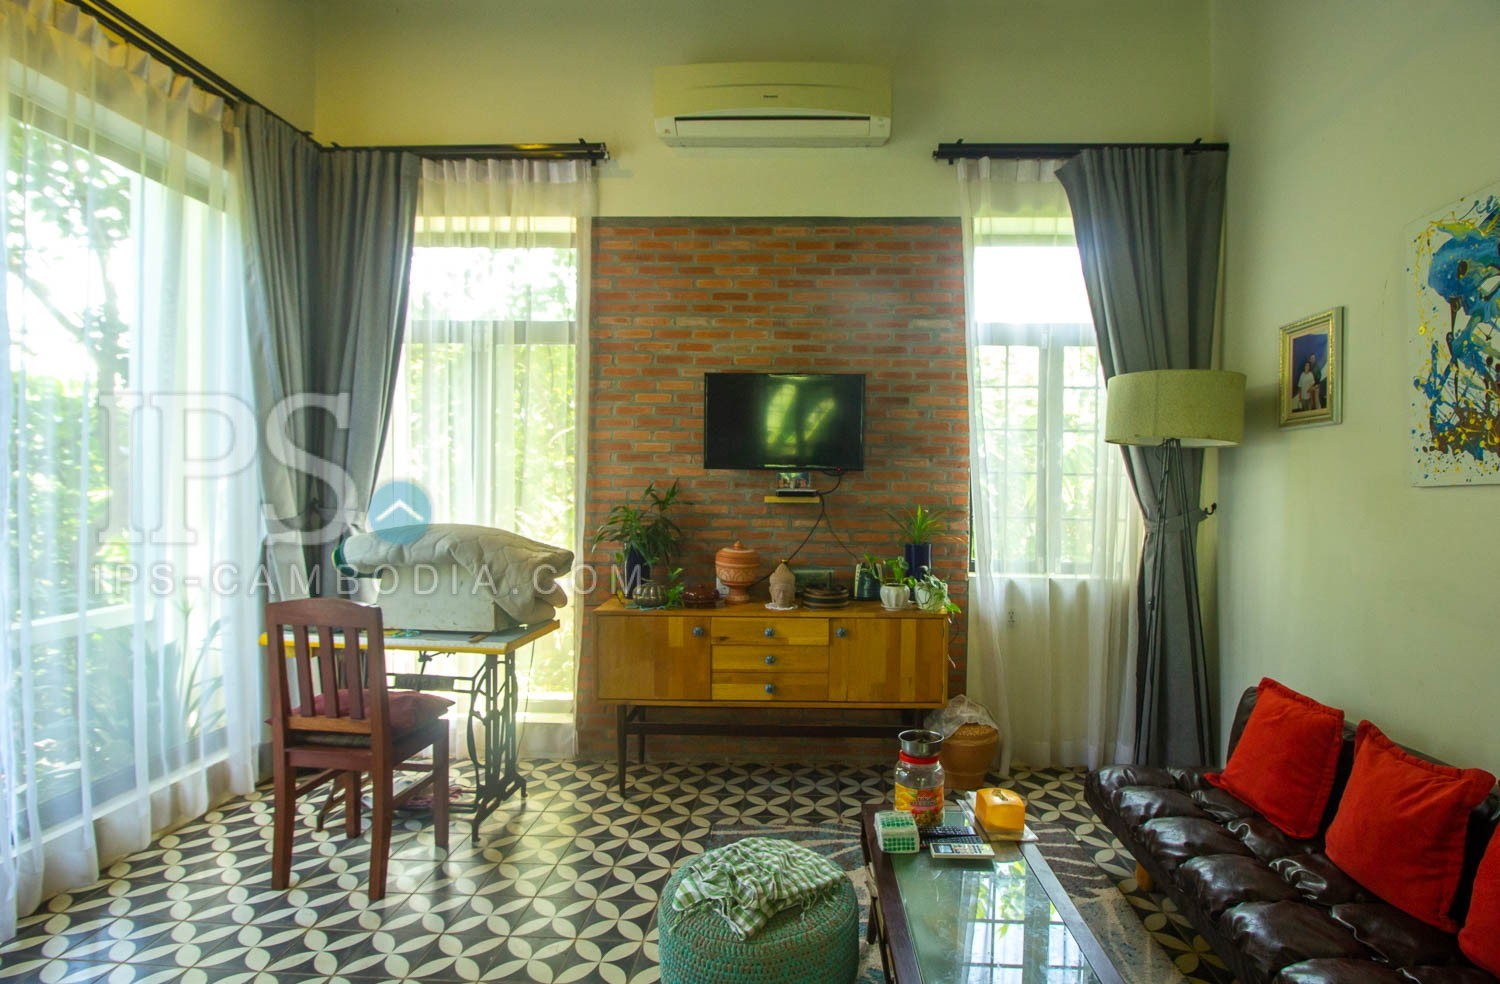 7 Bedroom Luxury Villa with Guest Apartments For Sale - Sangkat Siem Reap, Siem Reap